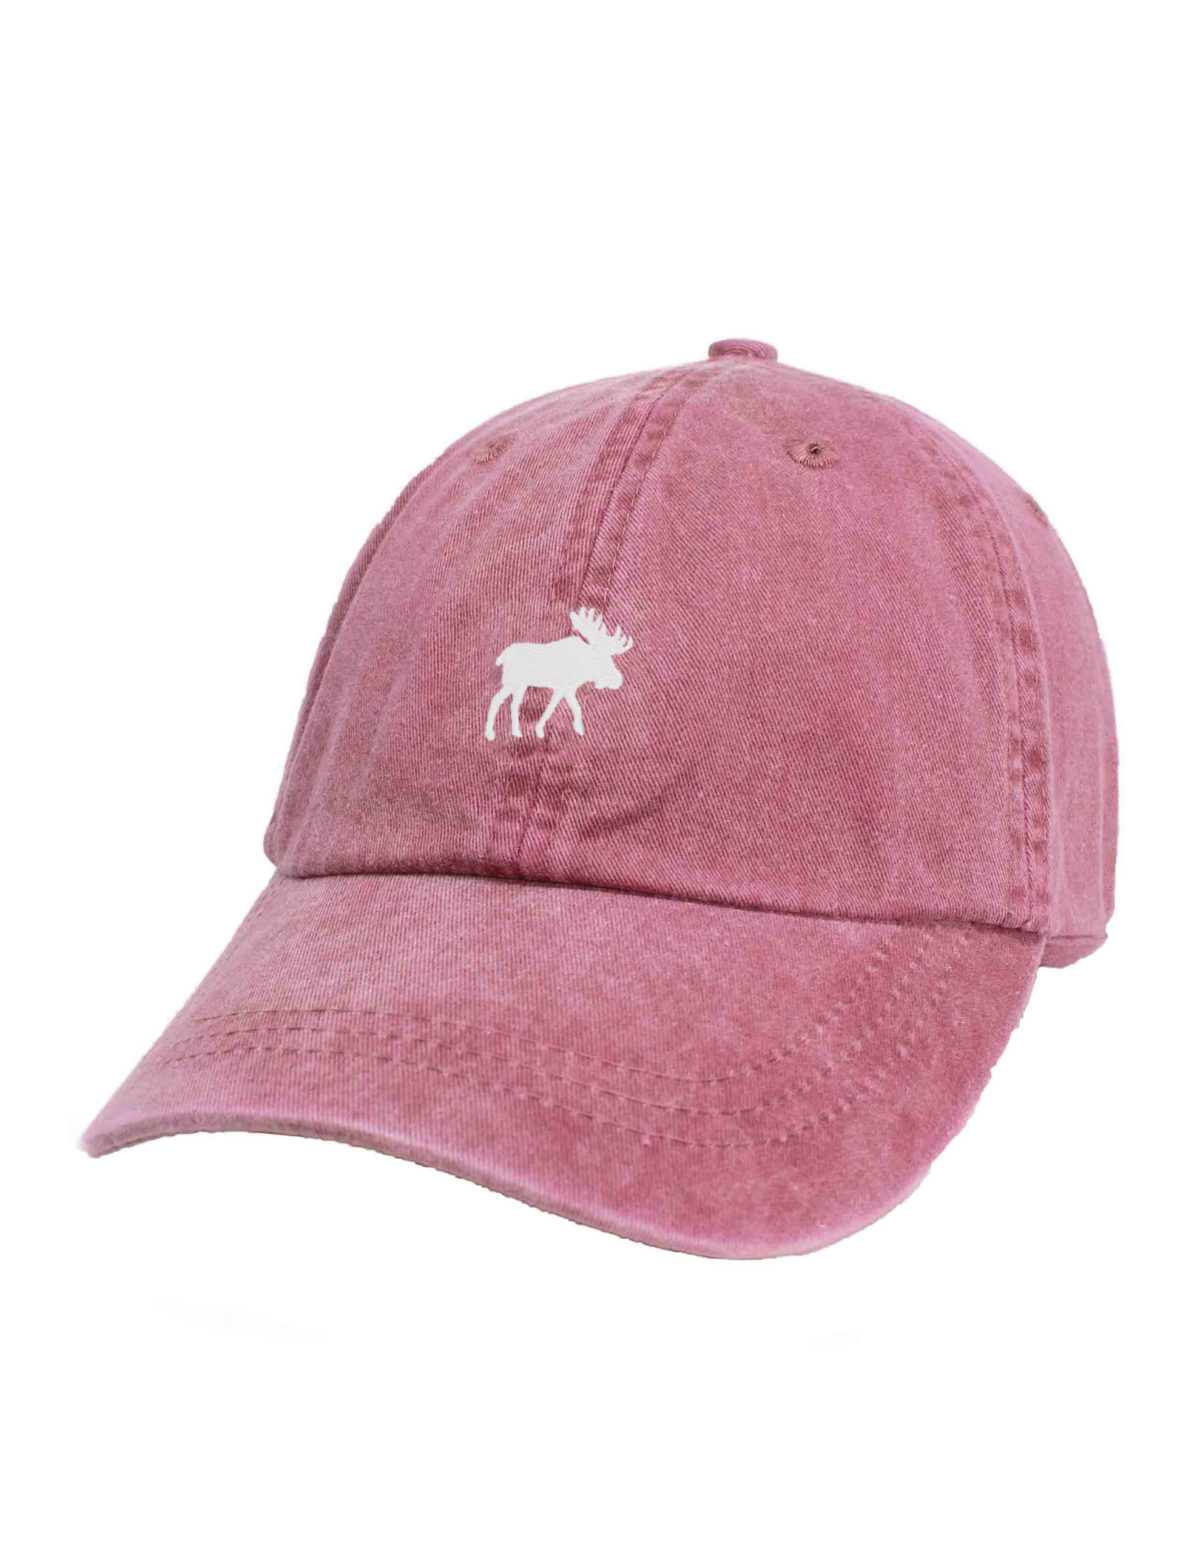 Adjustable embroidered moose cap Barefoot Campus Outfitter